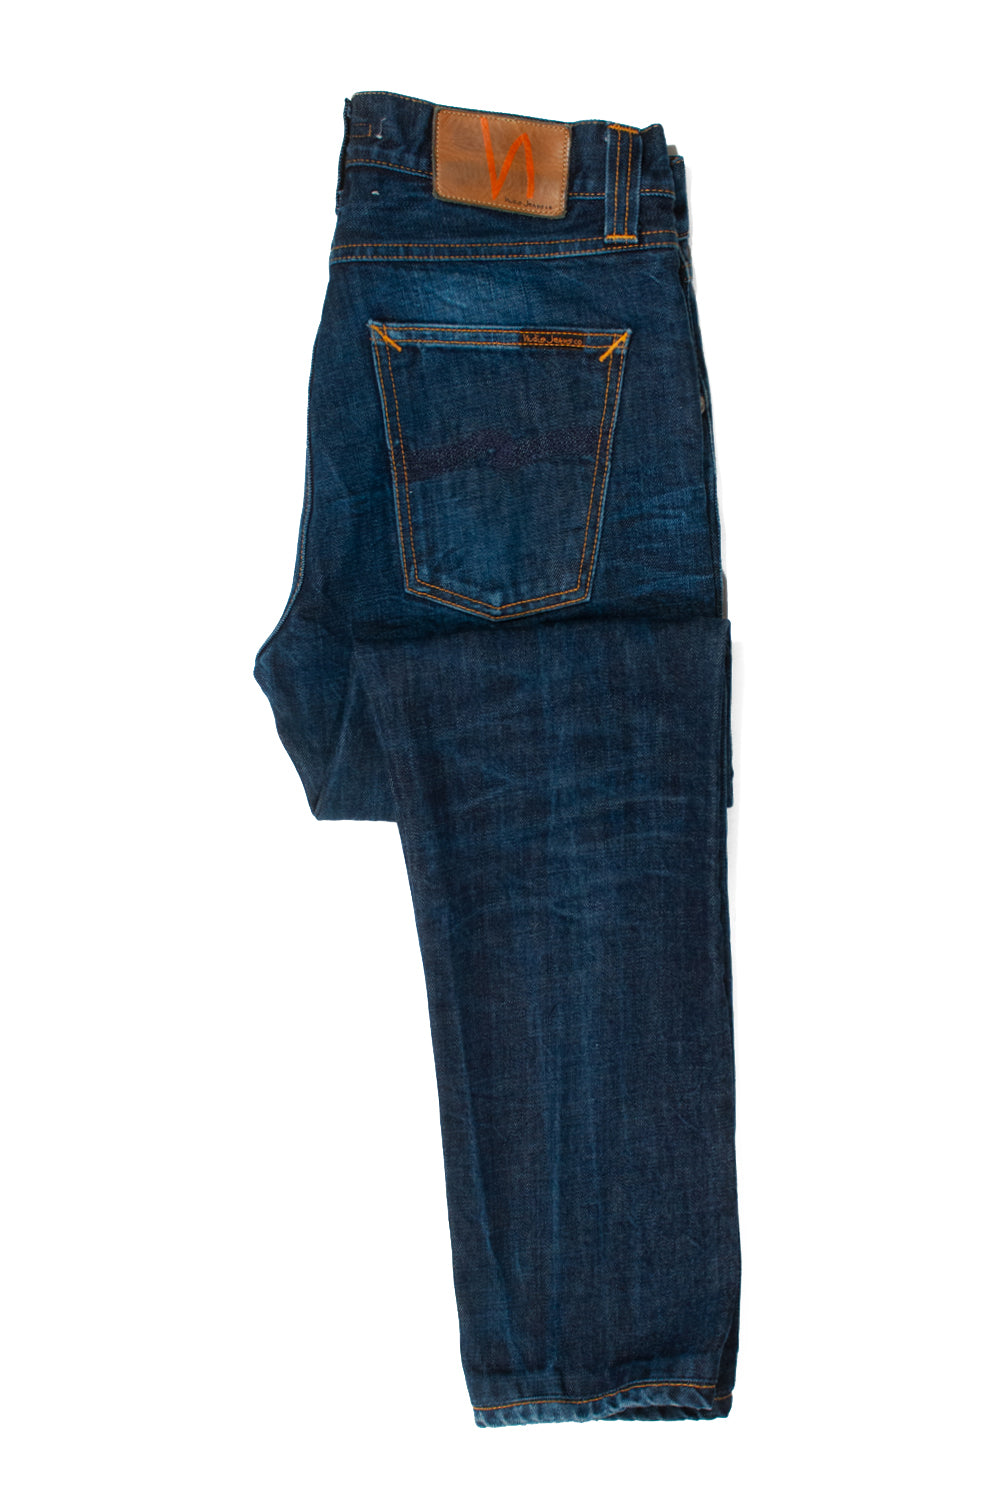 Nudie Big Bengt Dark Crinkle Jeans for Luxmrkt.com Menswear Consignment Edmonton